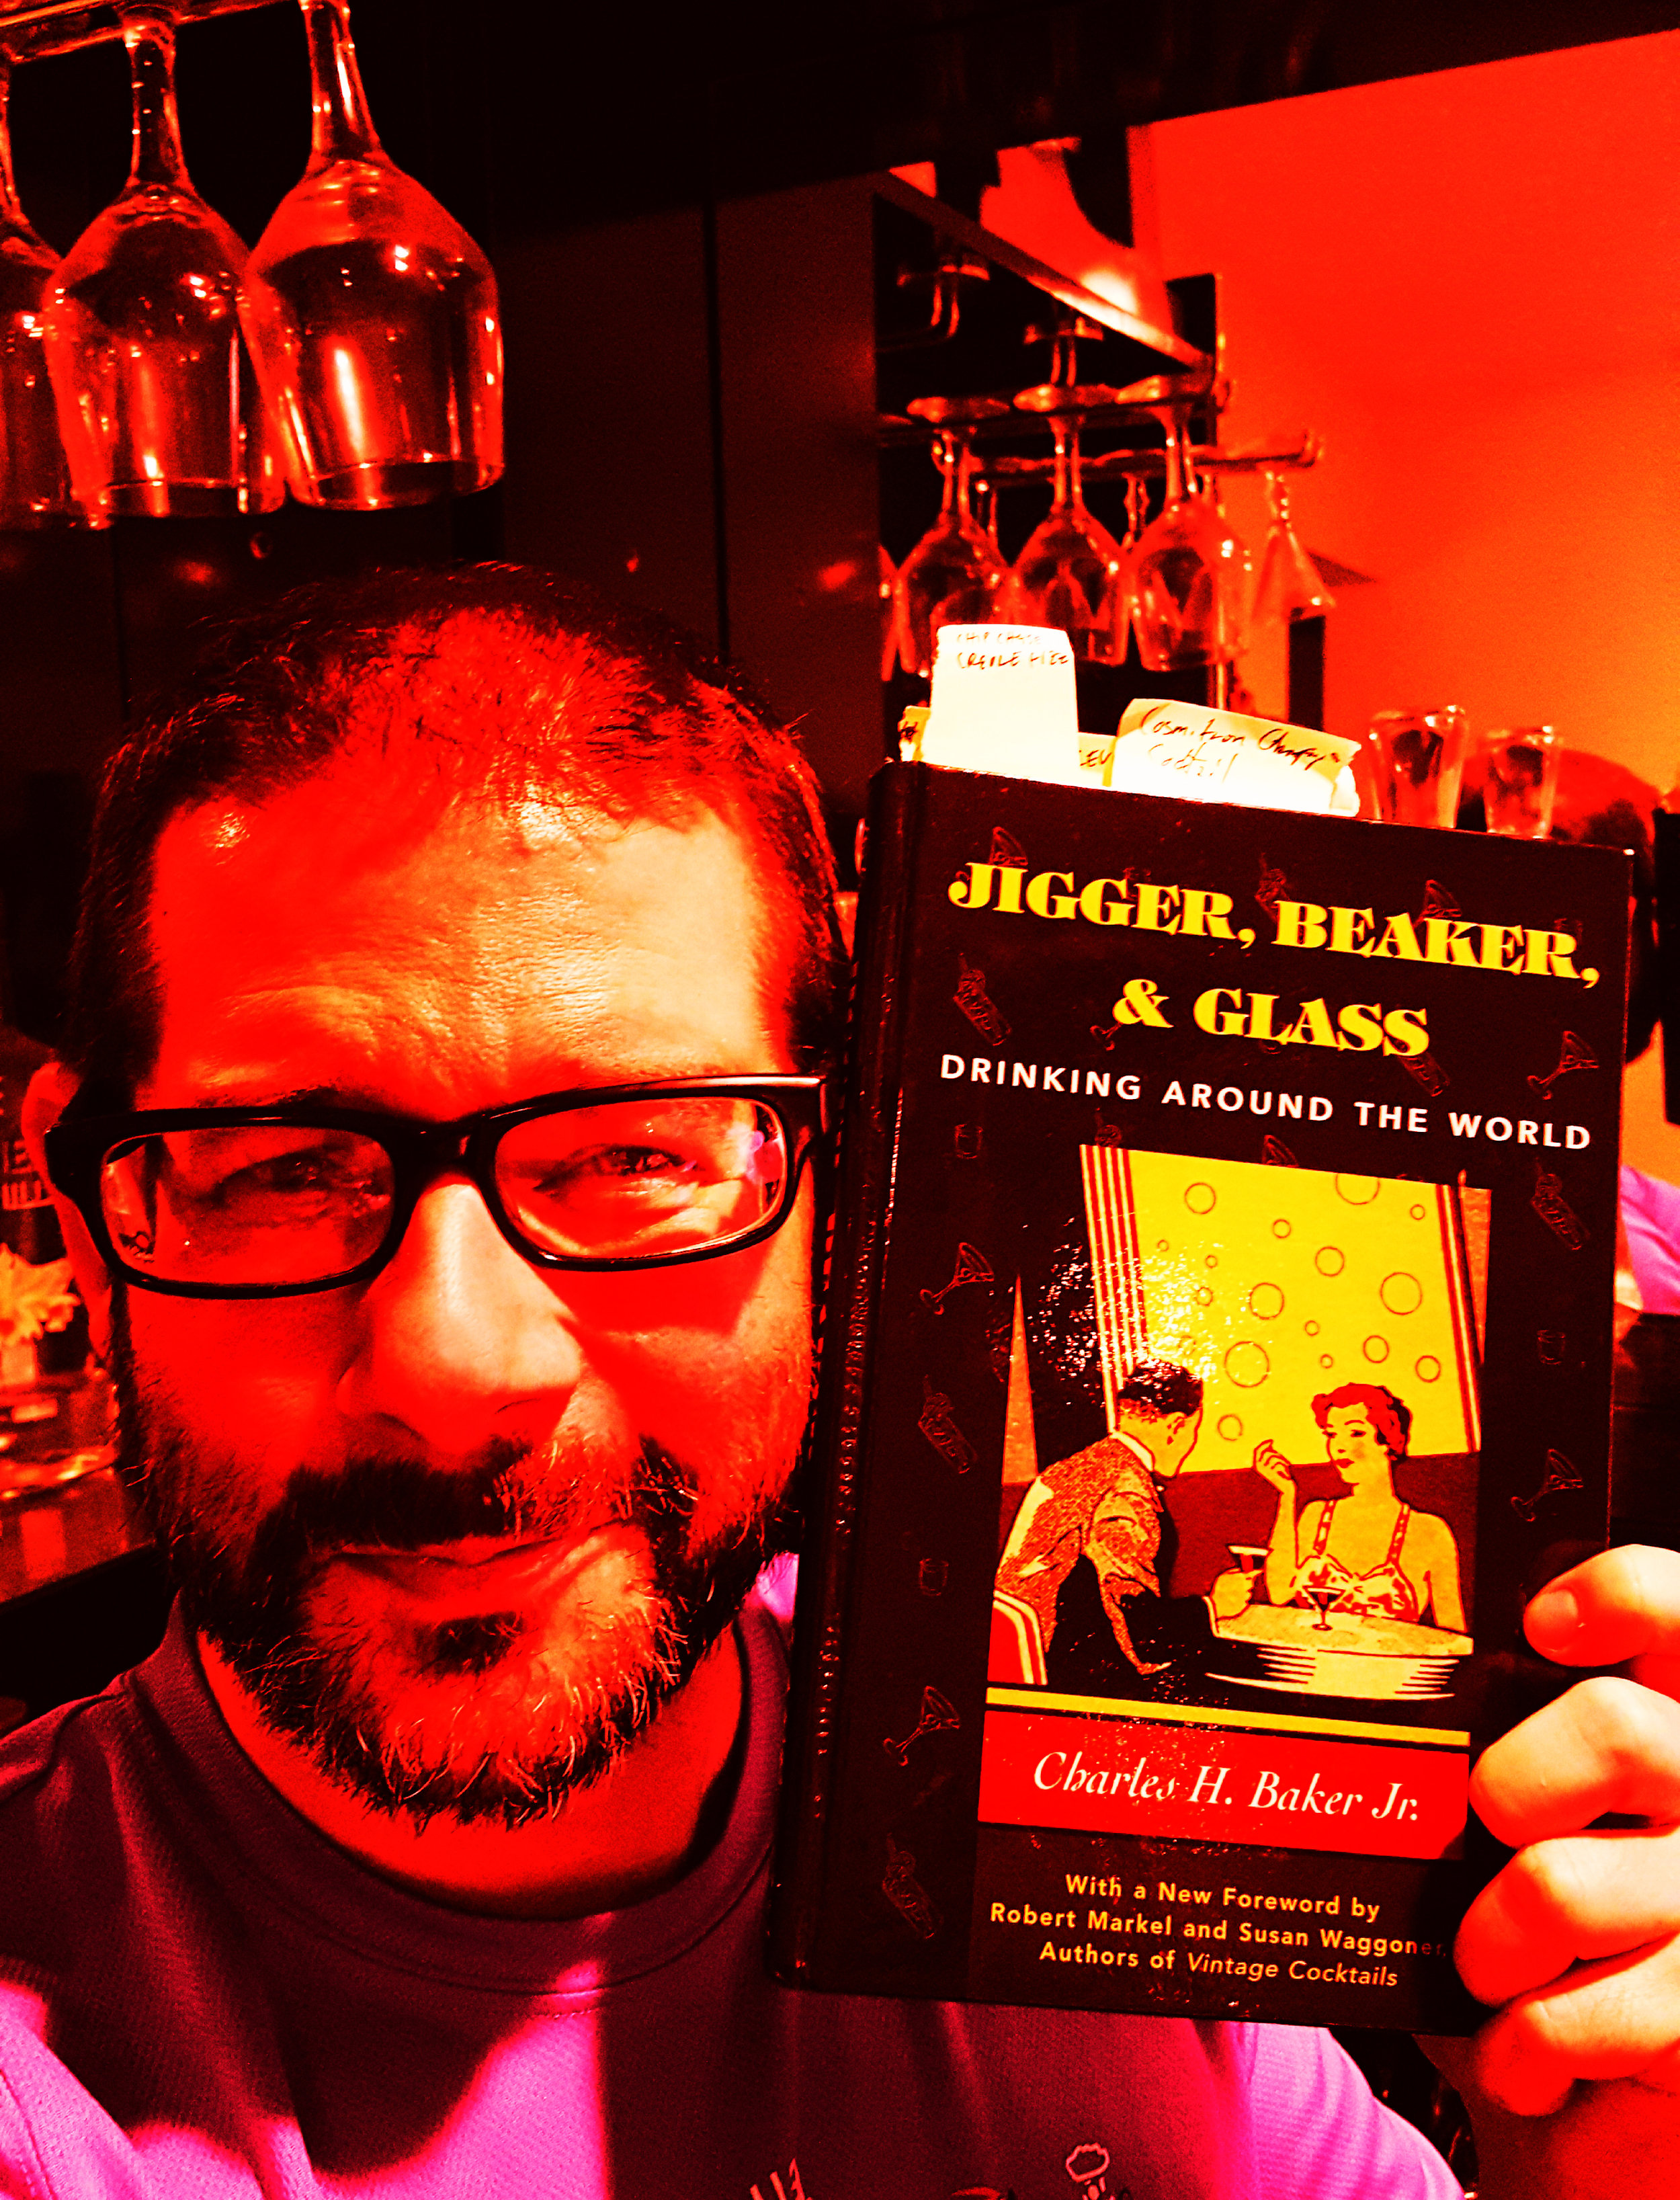 Ryan_Jigger_Beaker_Glass.jpg